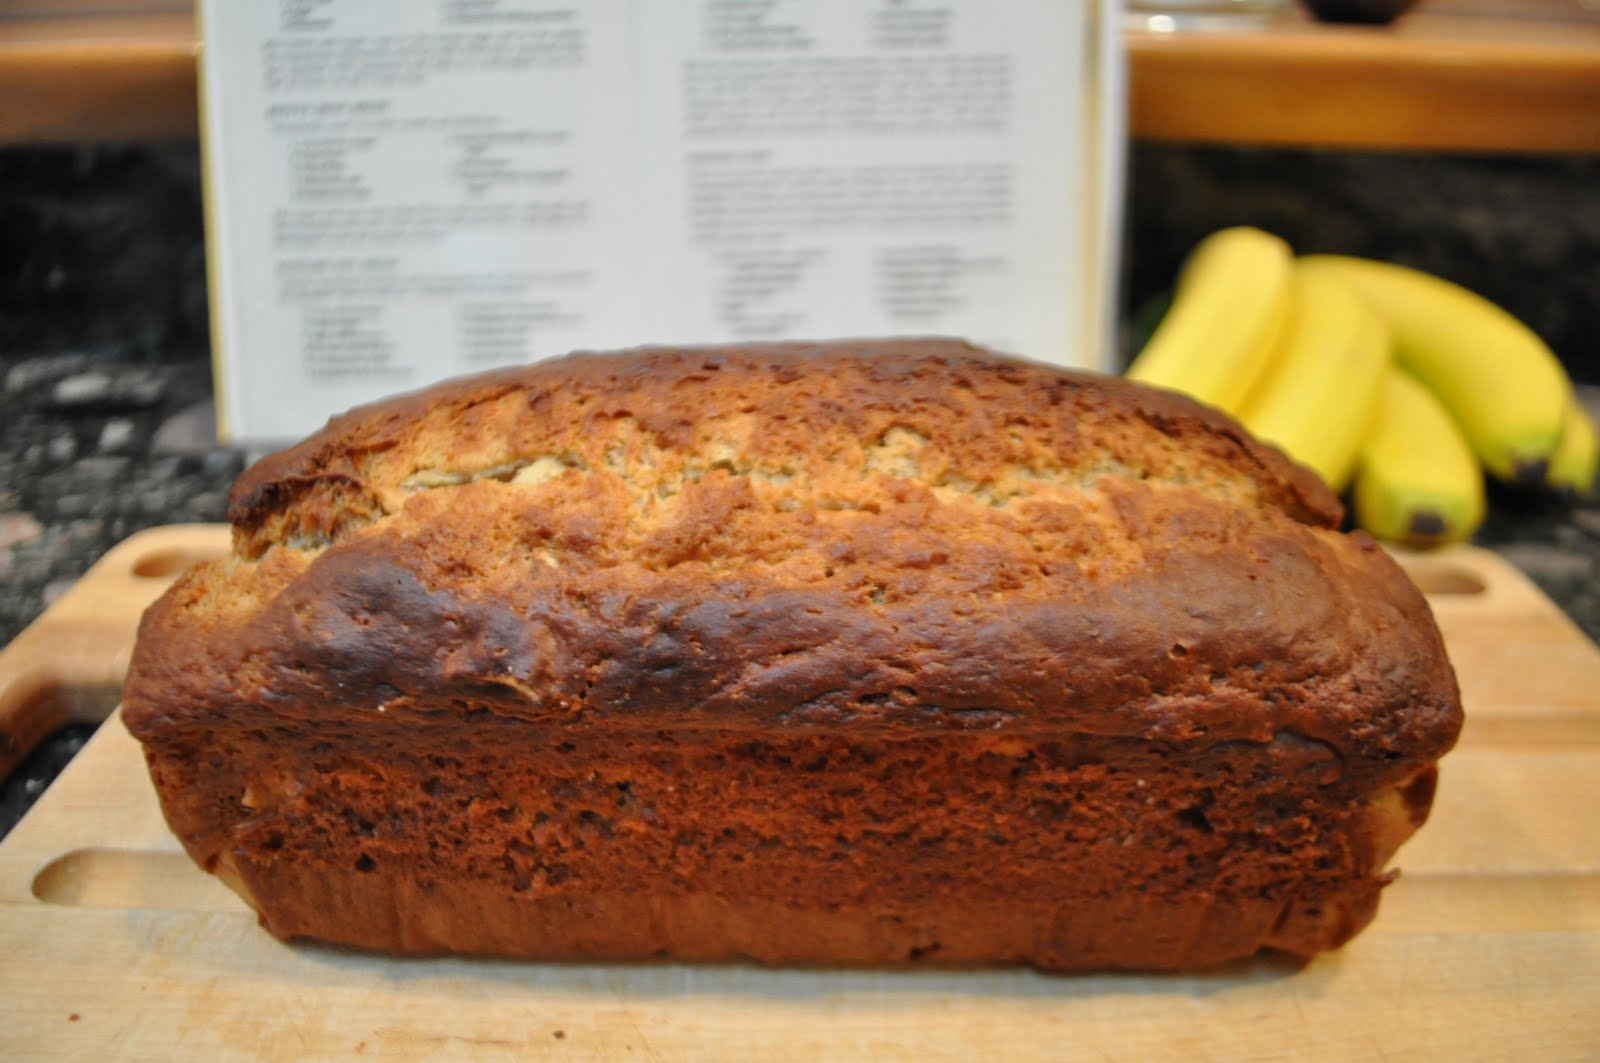 Banana loaf start with an onion let cool and serve with butter forumfinder Images